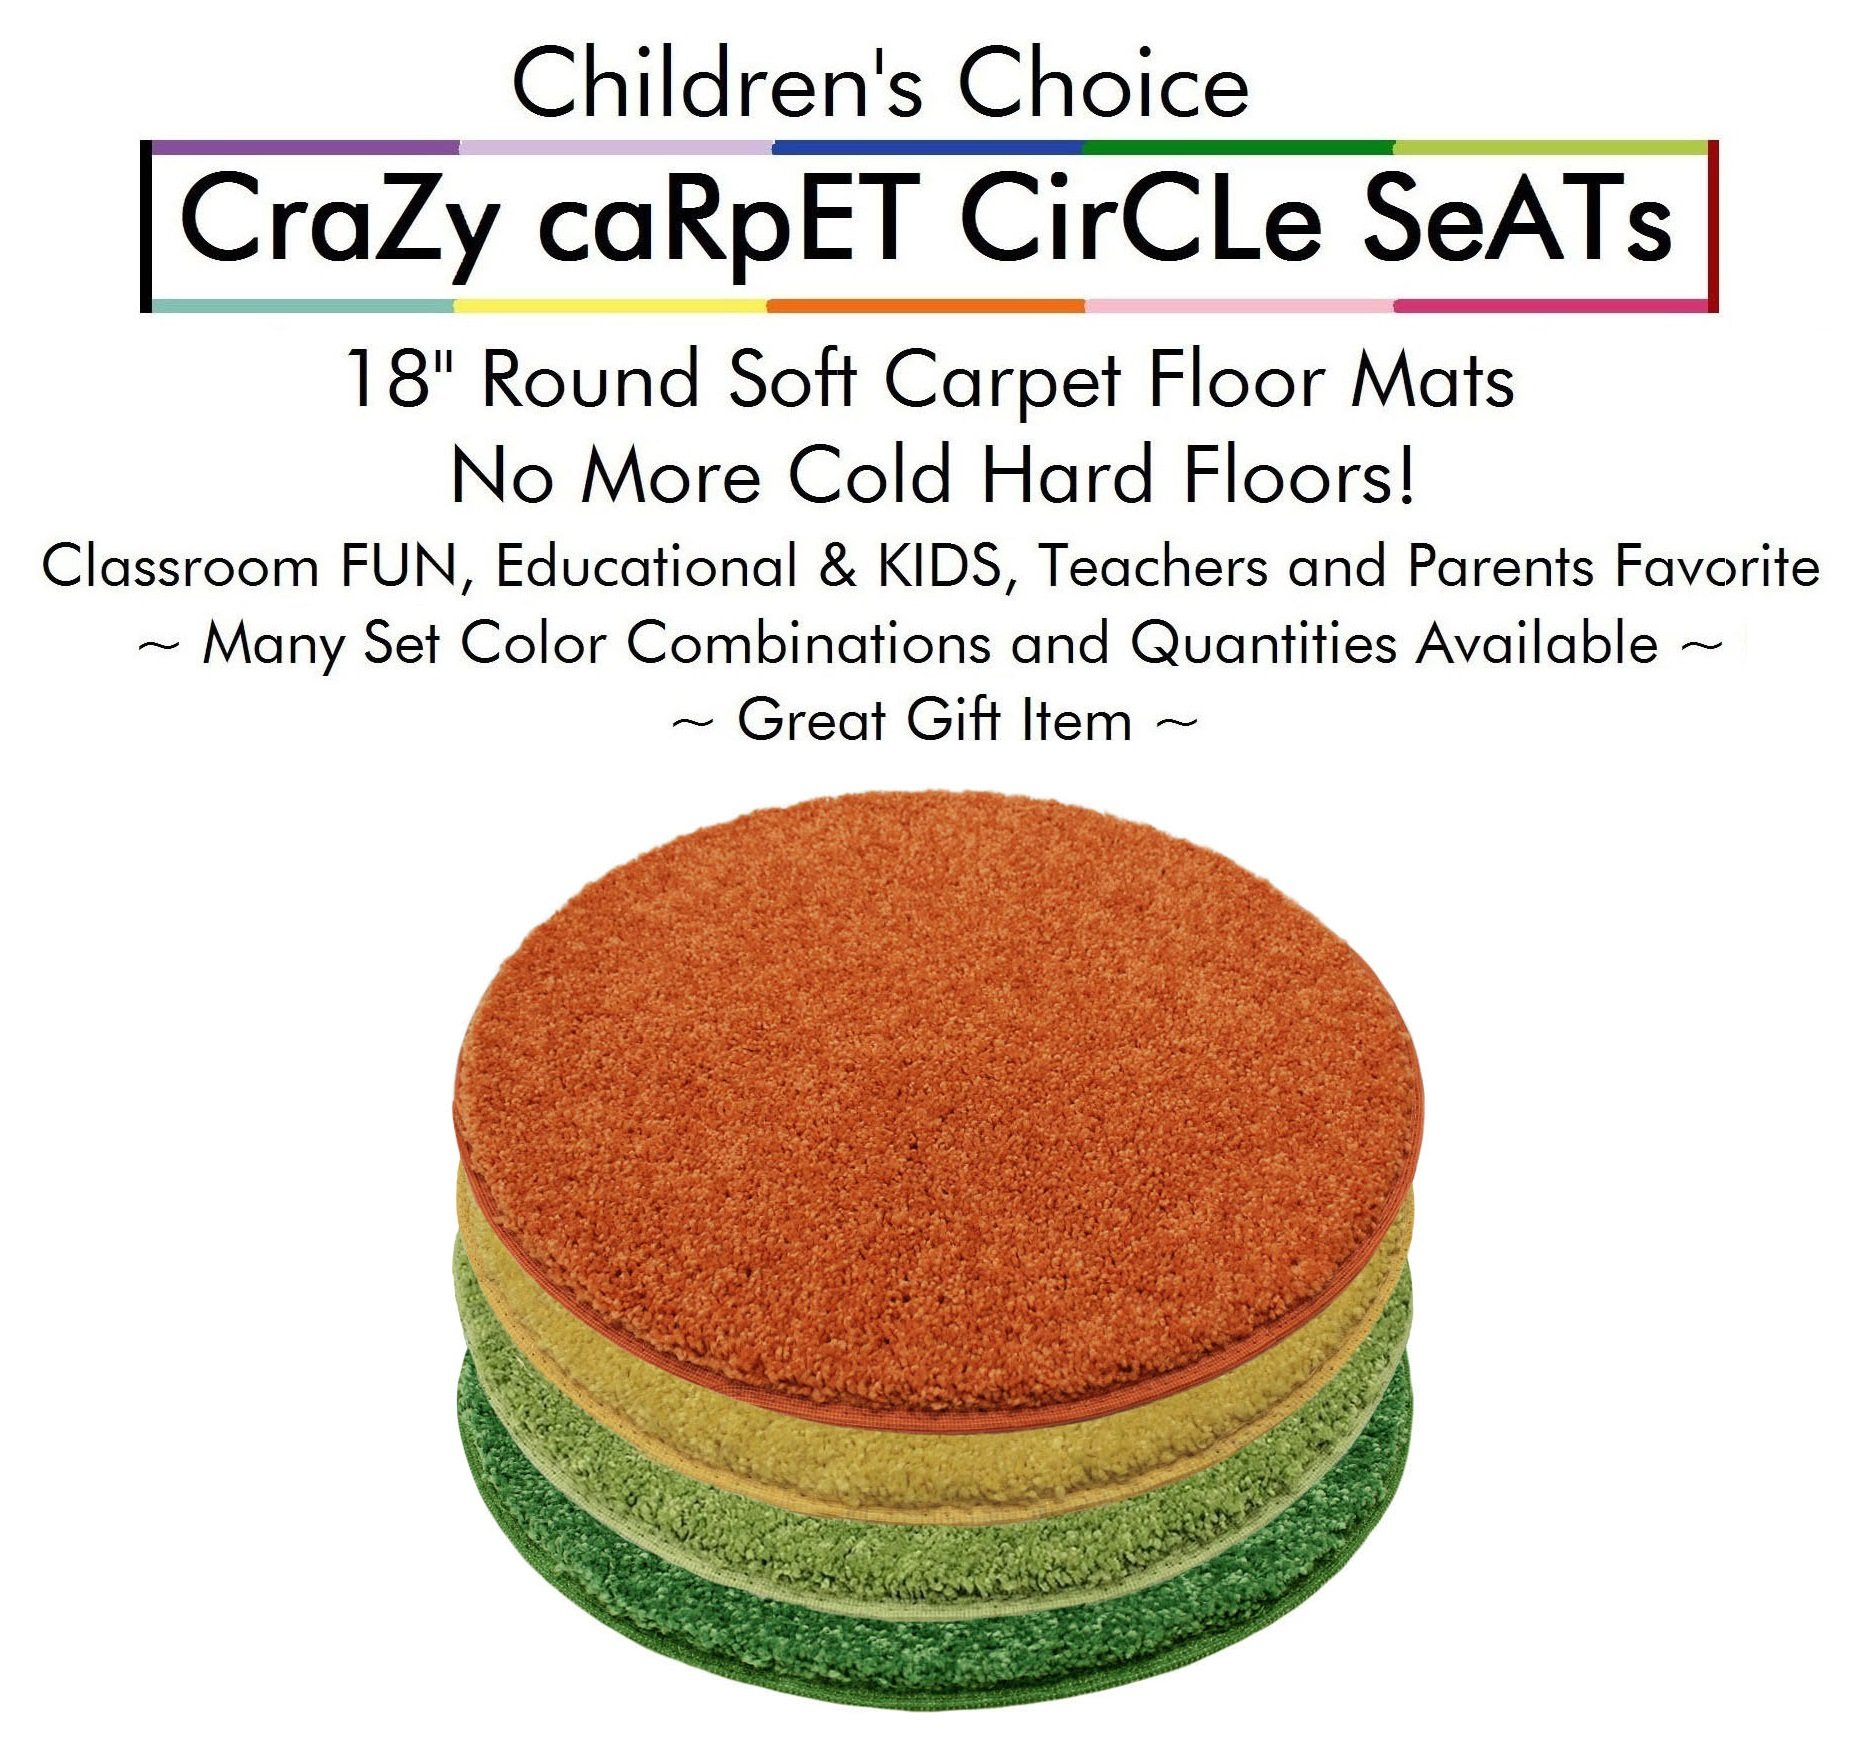 "Set 4 - Summer Days Kids CraZy CarPet CirCle SeaTs 18"" Round Soft Warm Floor Mat - Cushions 